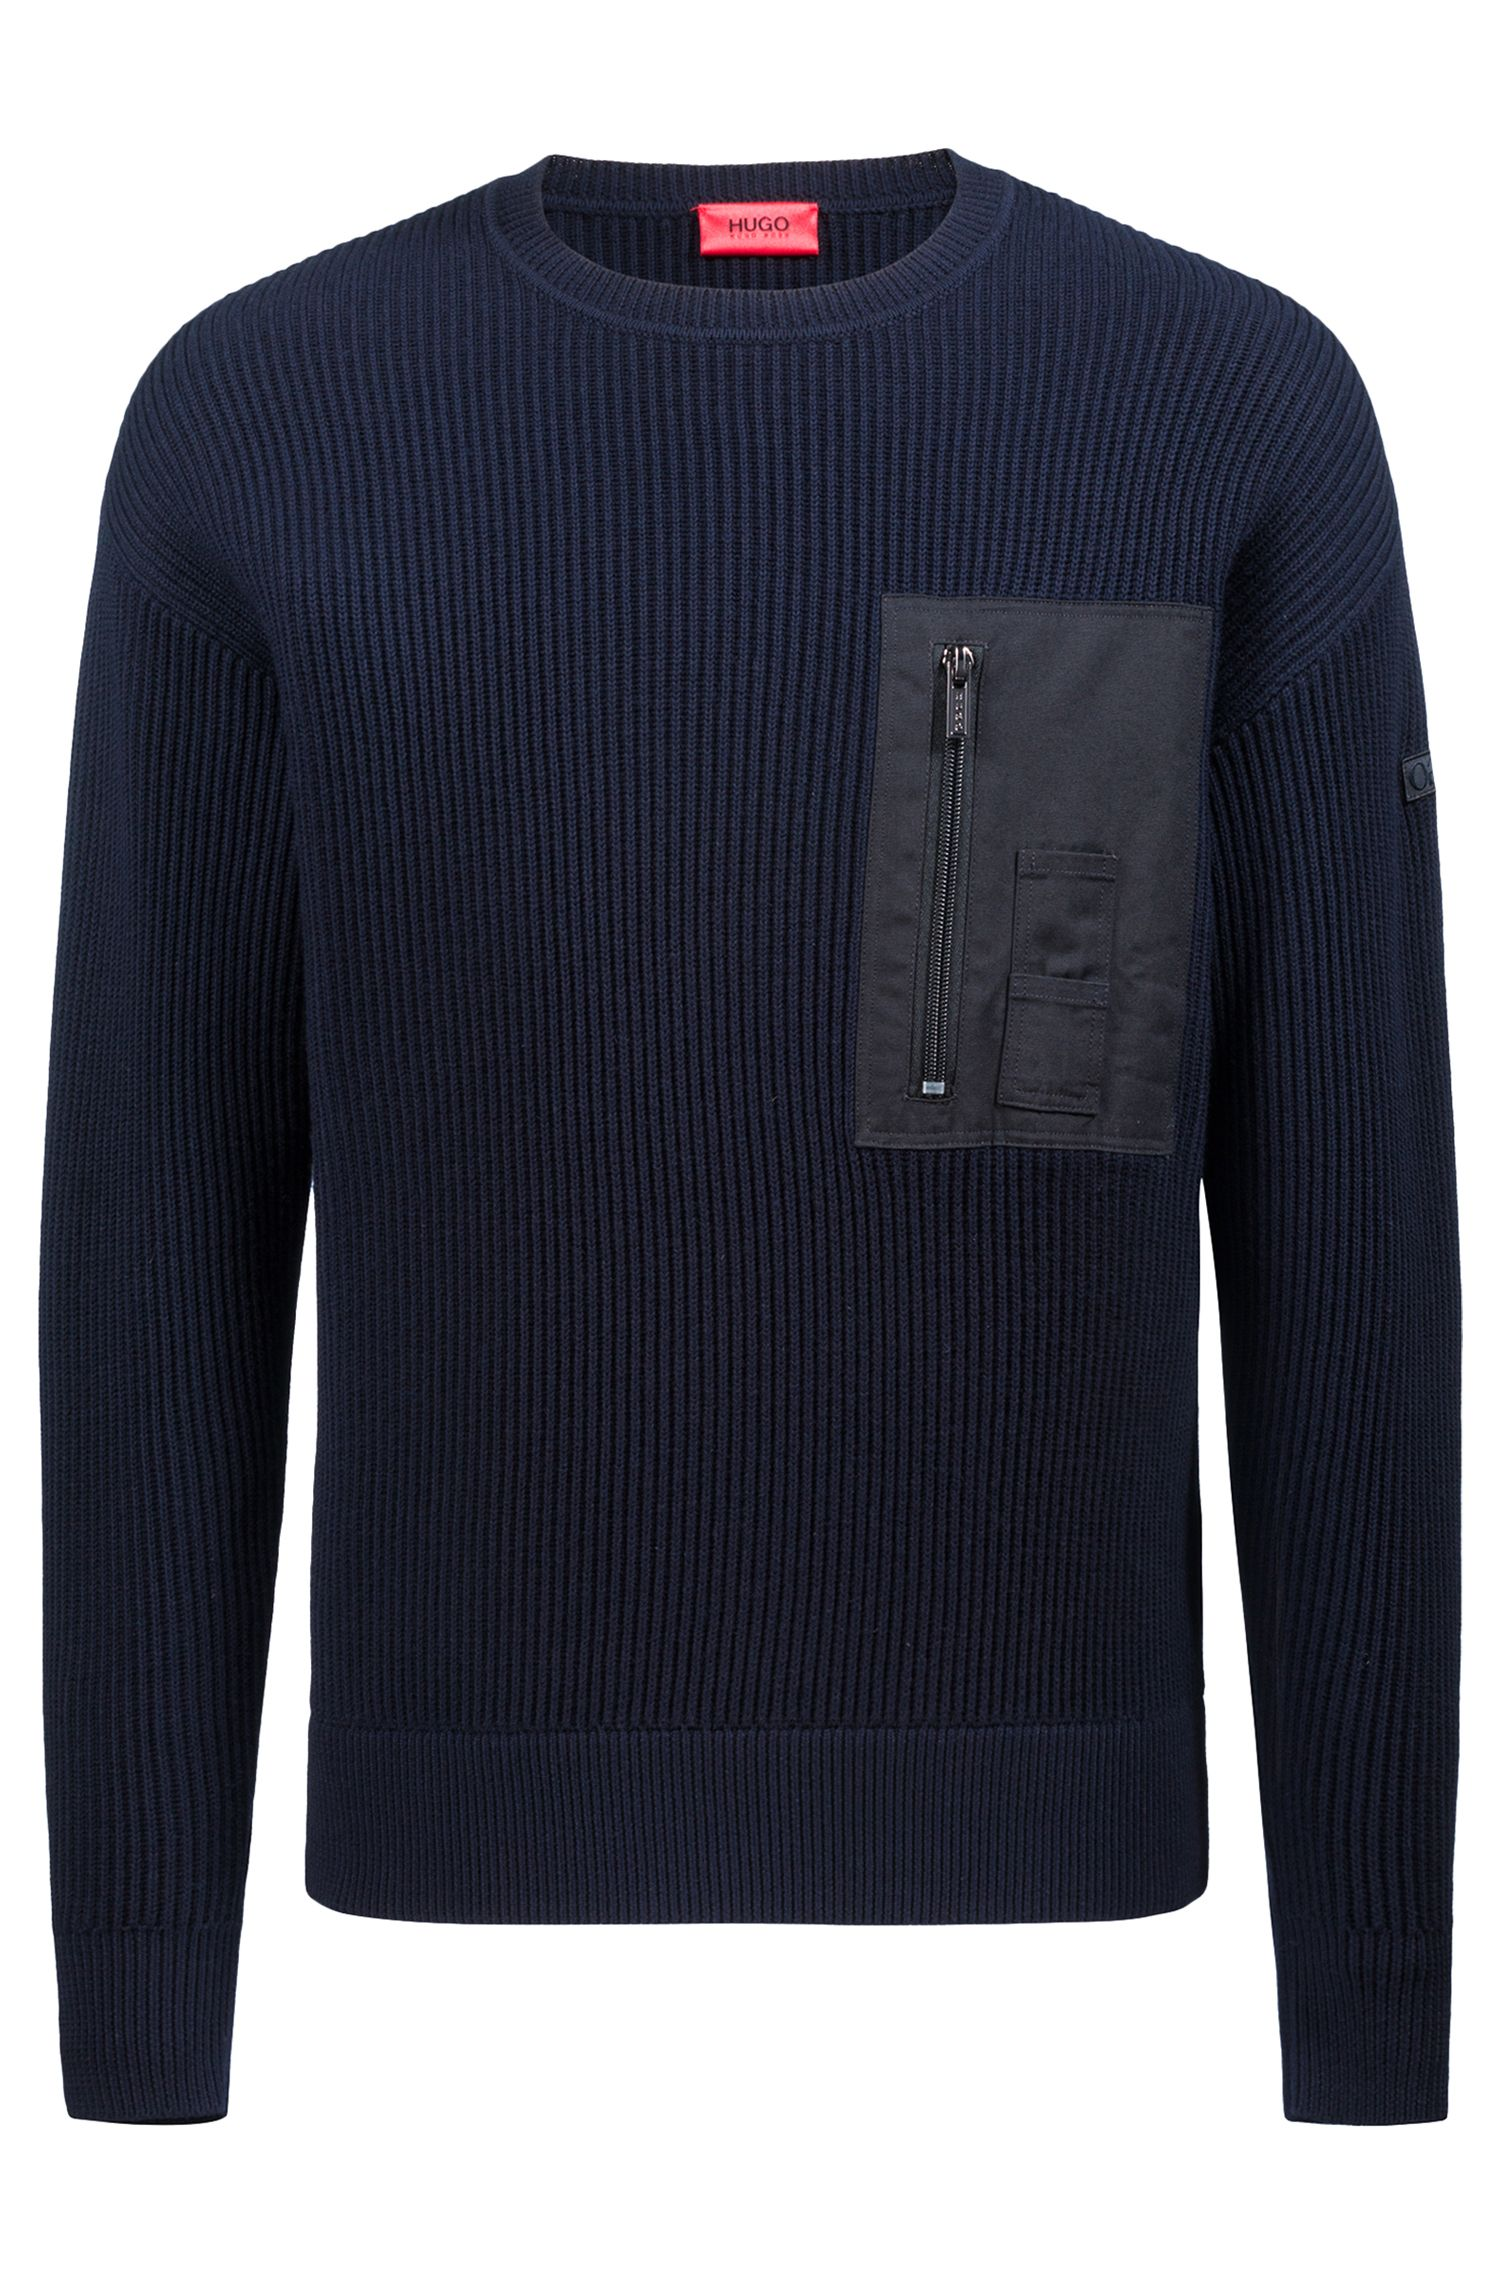 Military-inspired ribbed sweater with patch pocket